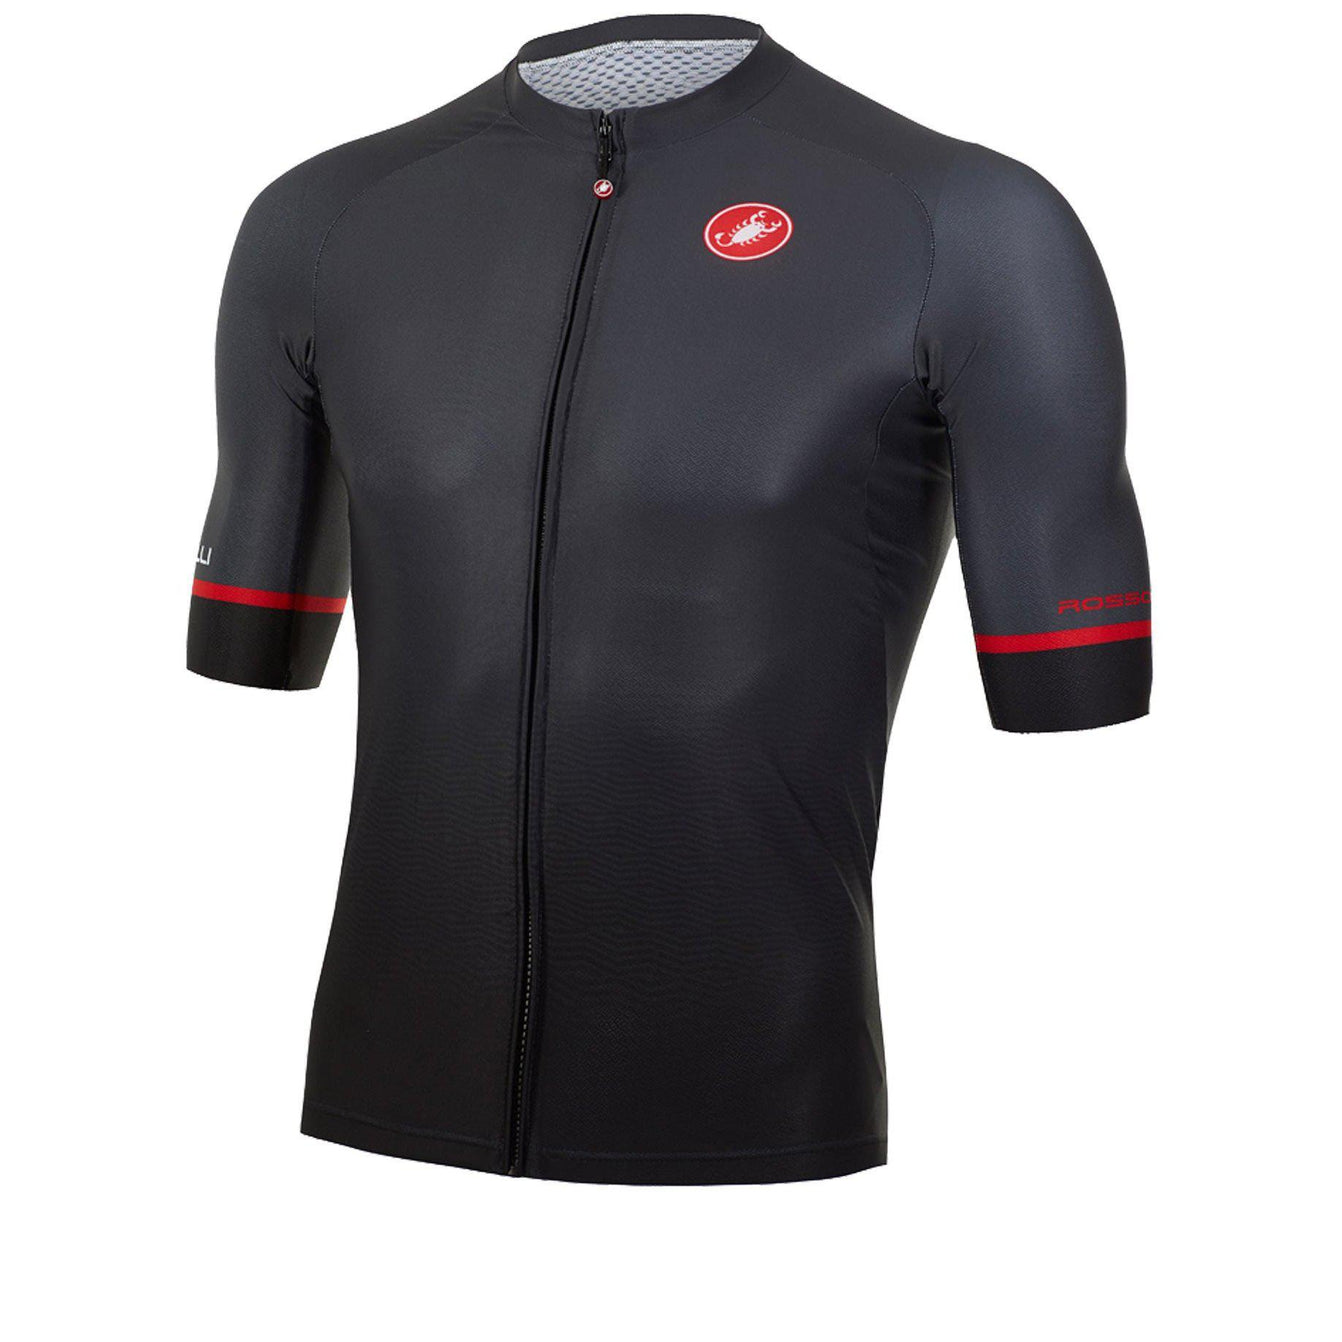 Castelli-Castelli Aero Race 6.0 Jersey-Dark Grey-XS-CS45200110301-saddleback-elite-performance-cycling